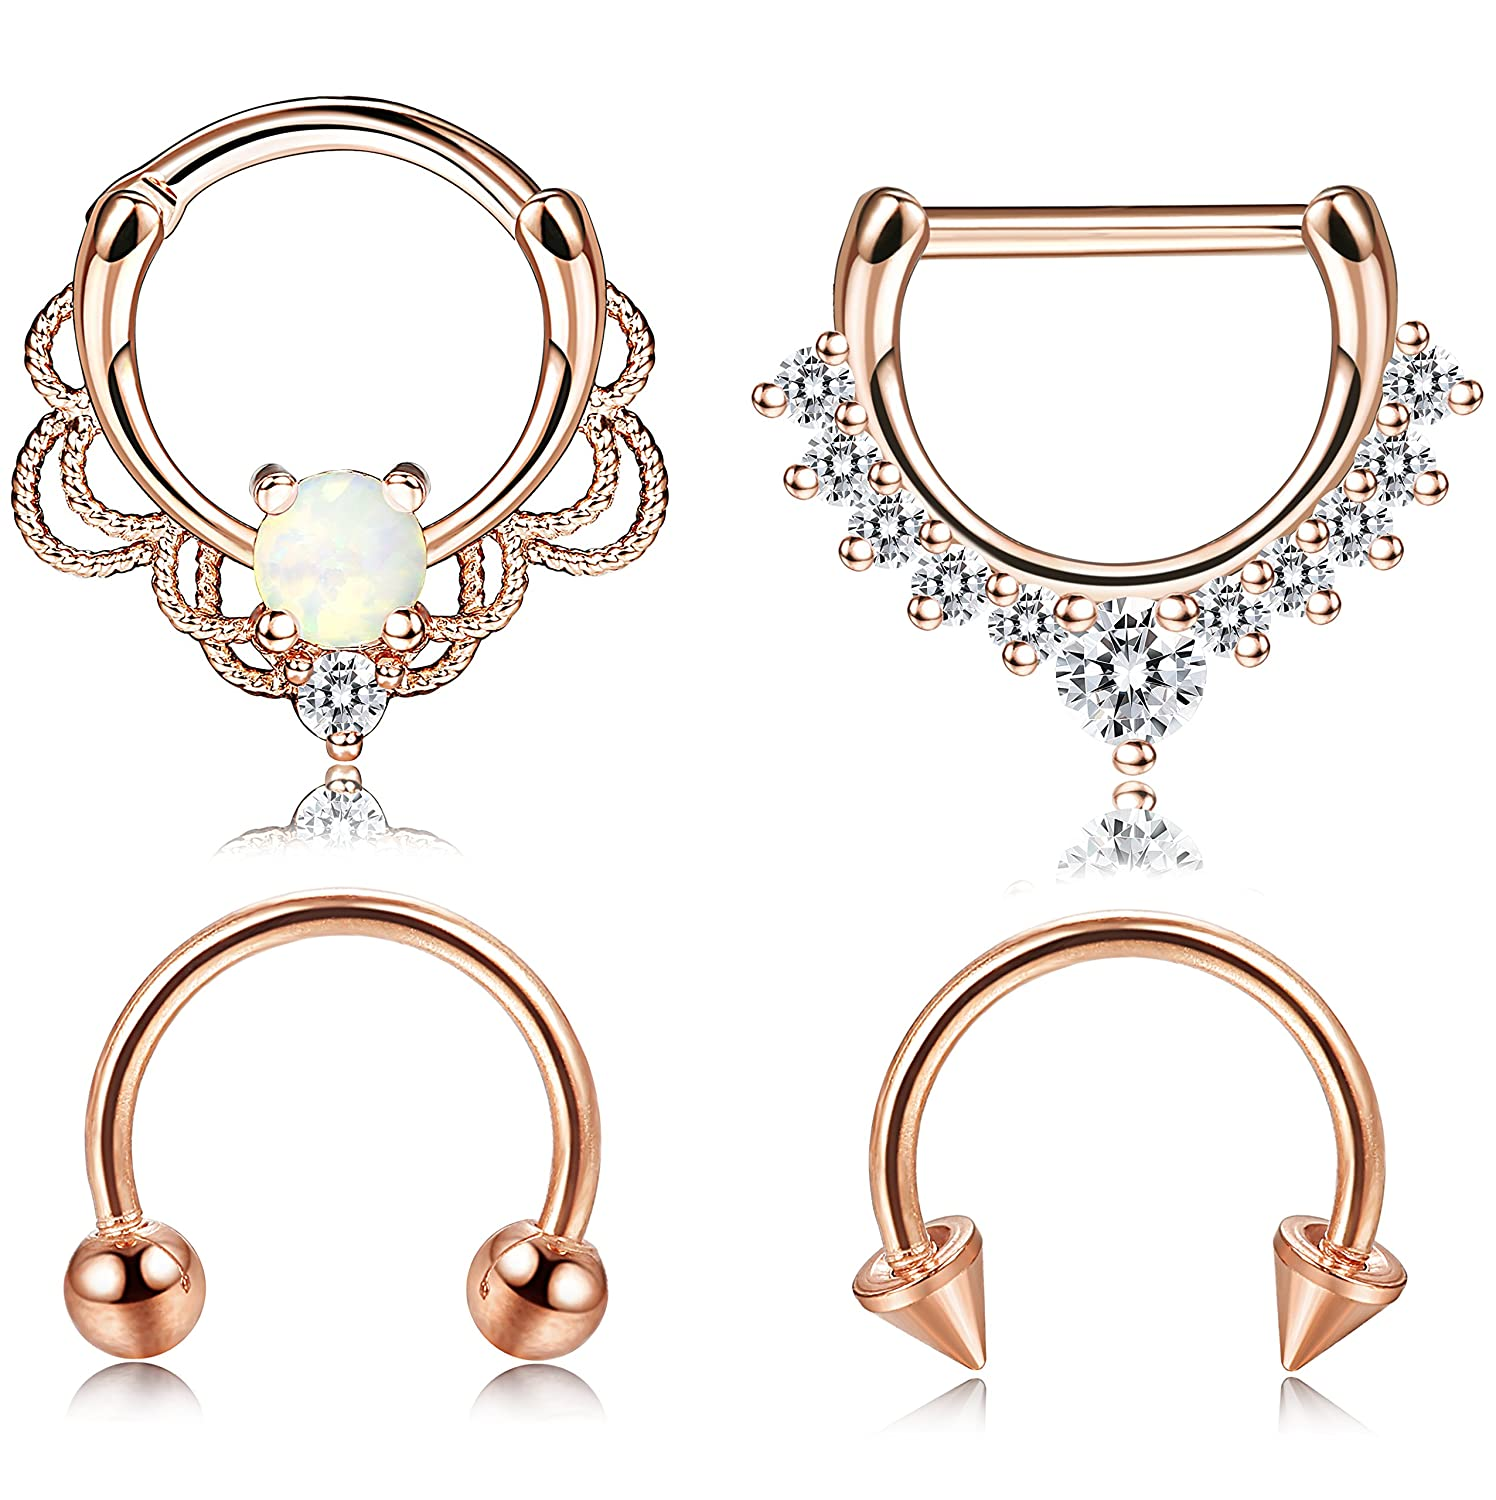 Jstyle 4 Pcs 316L Stainless Steel Septum Ring Nose Hoop Piercing 16G 8MM Silver Rose Gold Tone B078WN1FLB_US